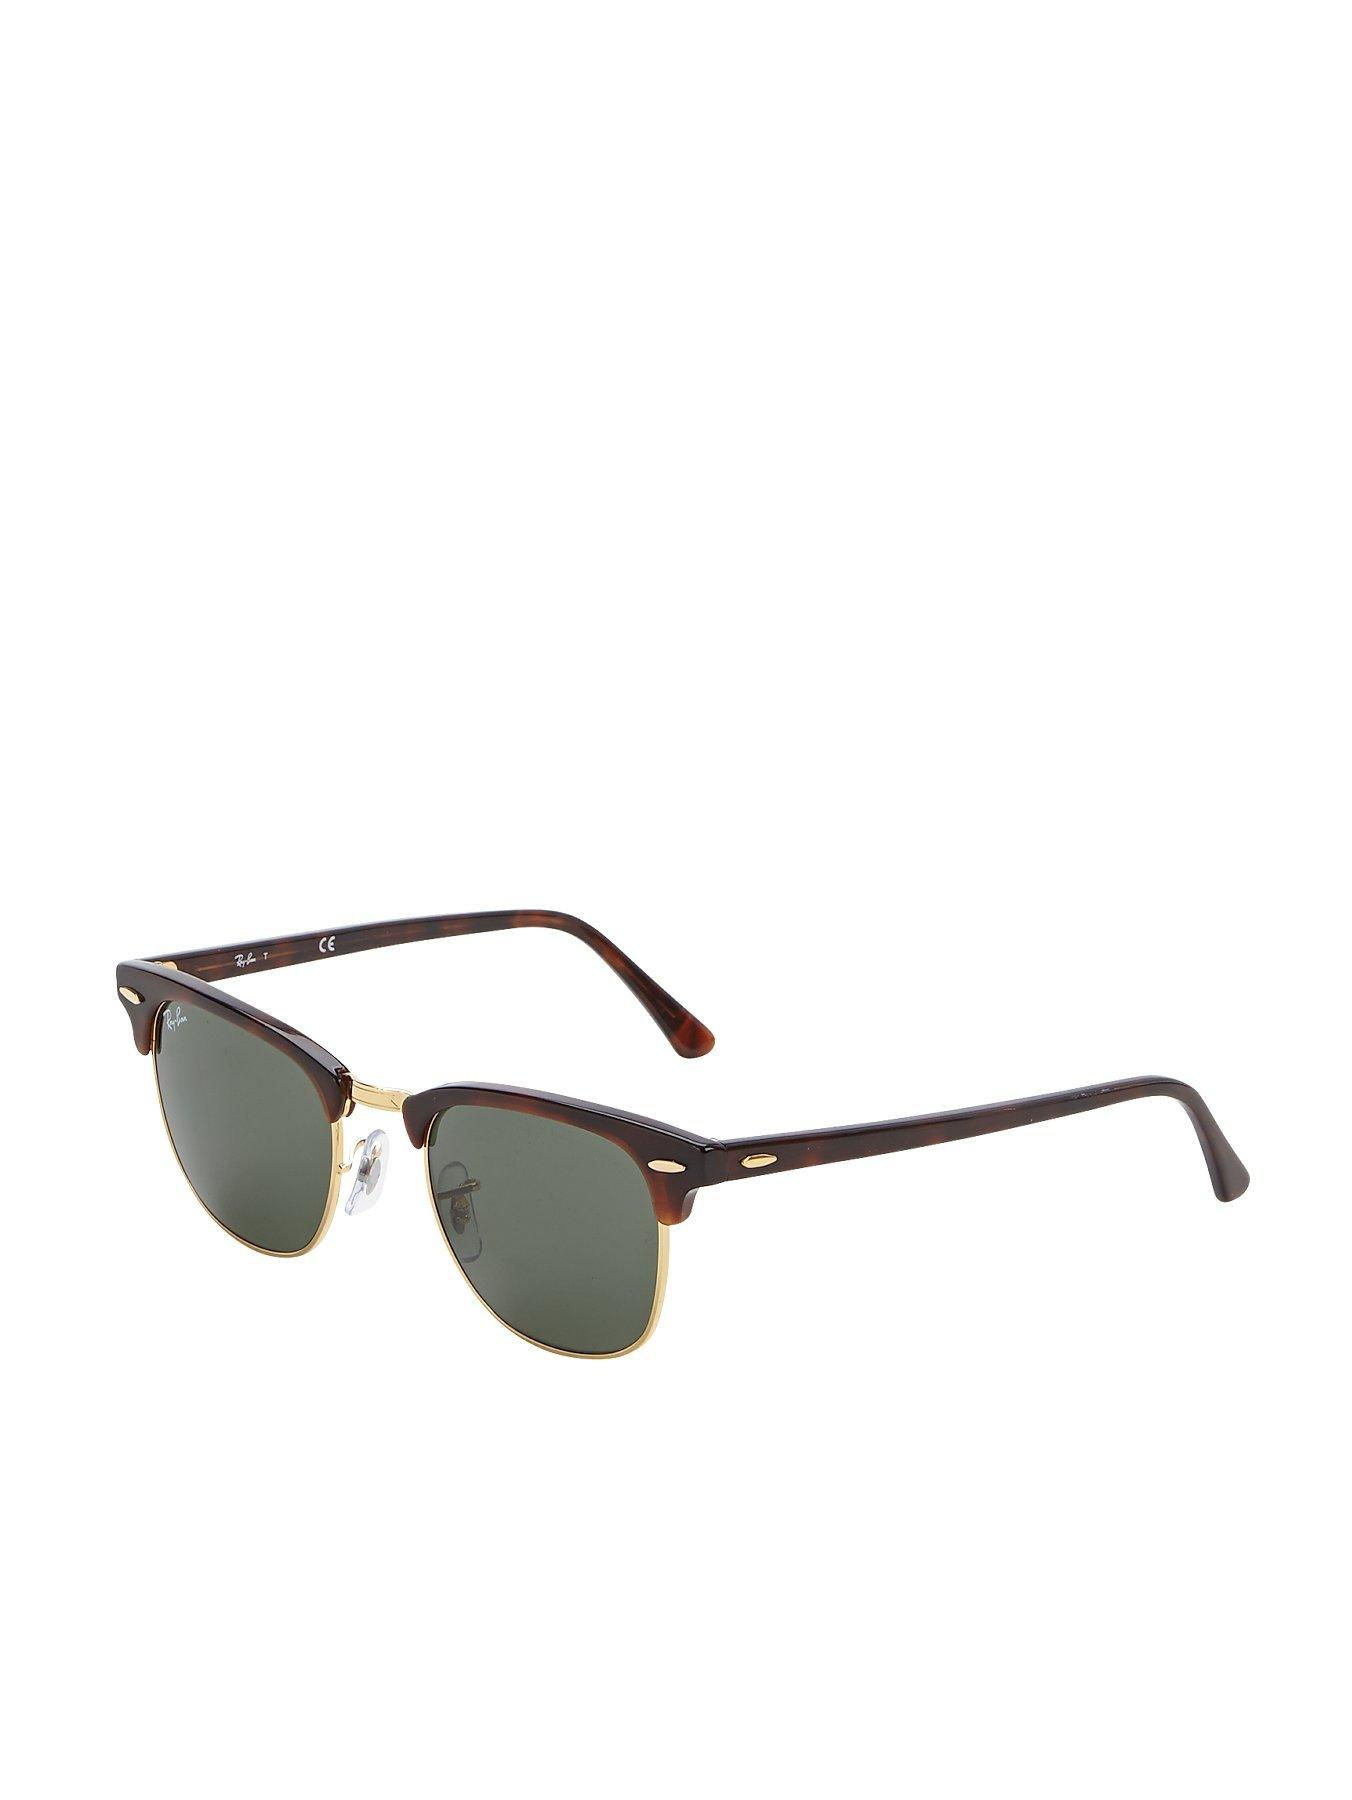 ray ban outlet zone  ray ban clubmaster sunglasses